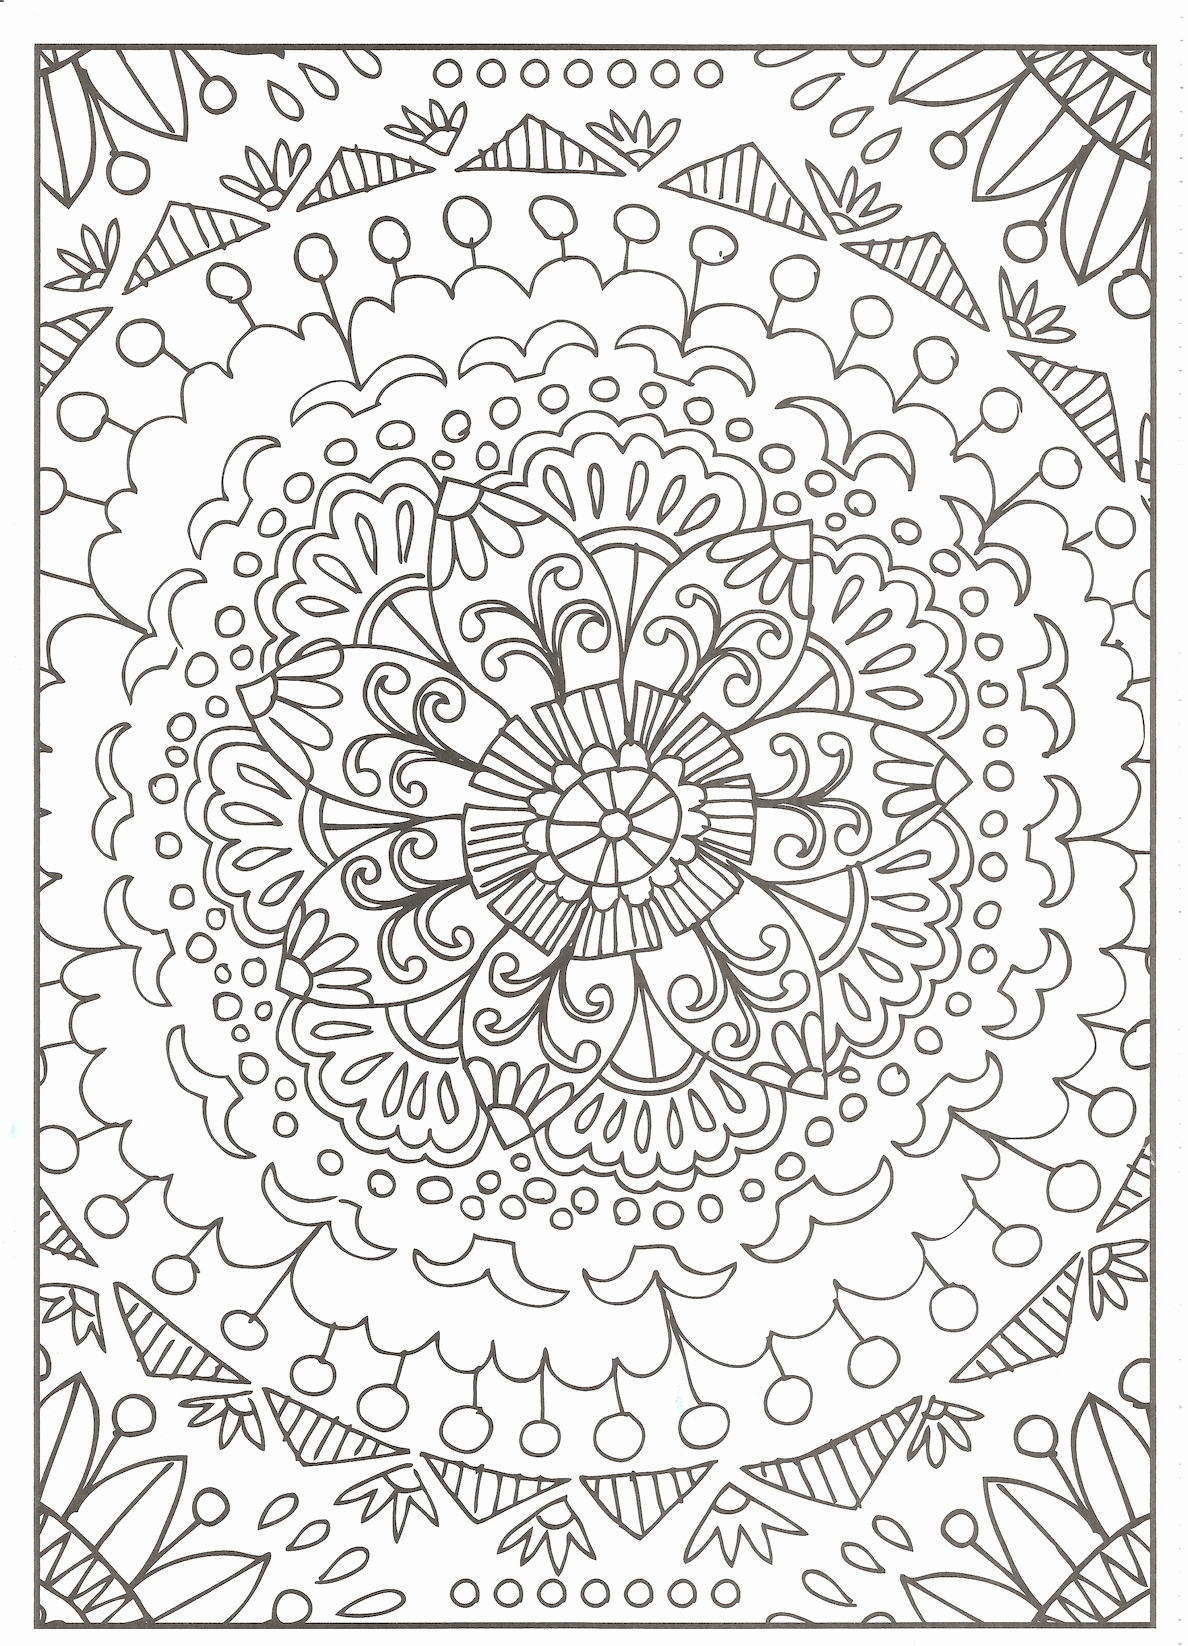 Tessellation Coloring Pages Free Printable  to Print 4g - Free For kids